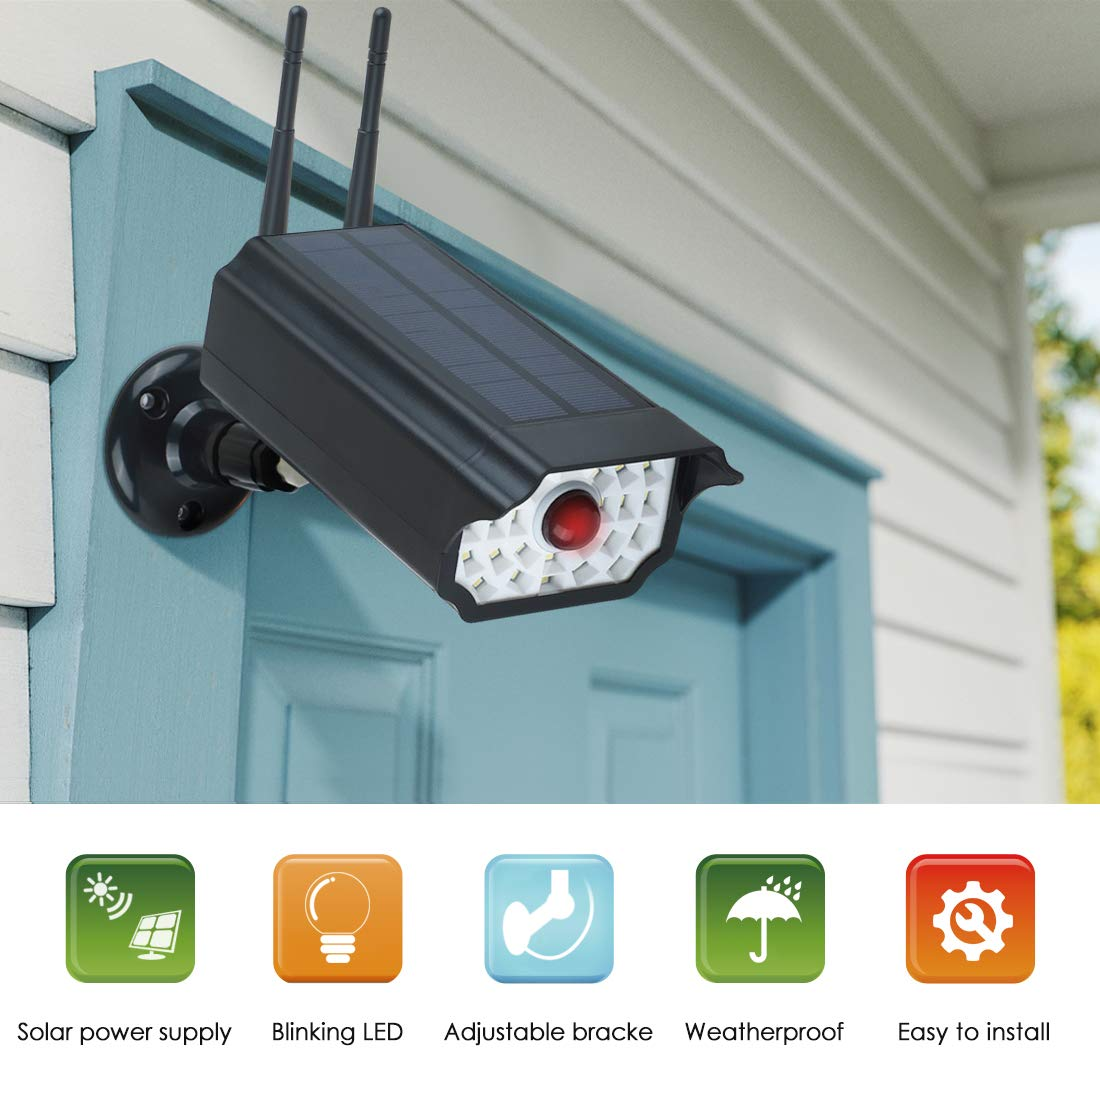 Dummy Security Camera Waterproof Realistic Solar Powerd Wireless Surveillance Fake Camera ,Solar Simulation Monitor with LED Flashing Light for Outdoor Home//Warehouse(Black)